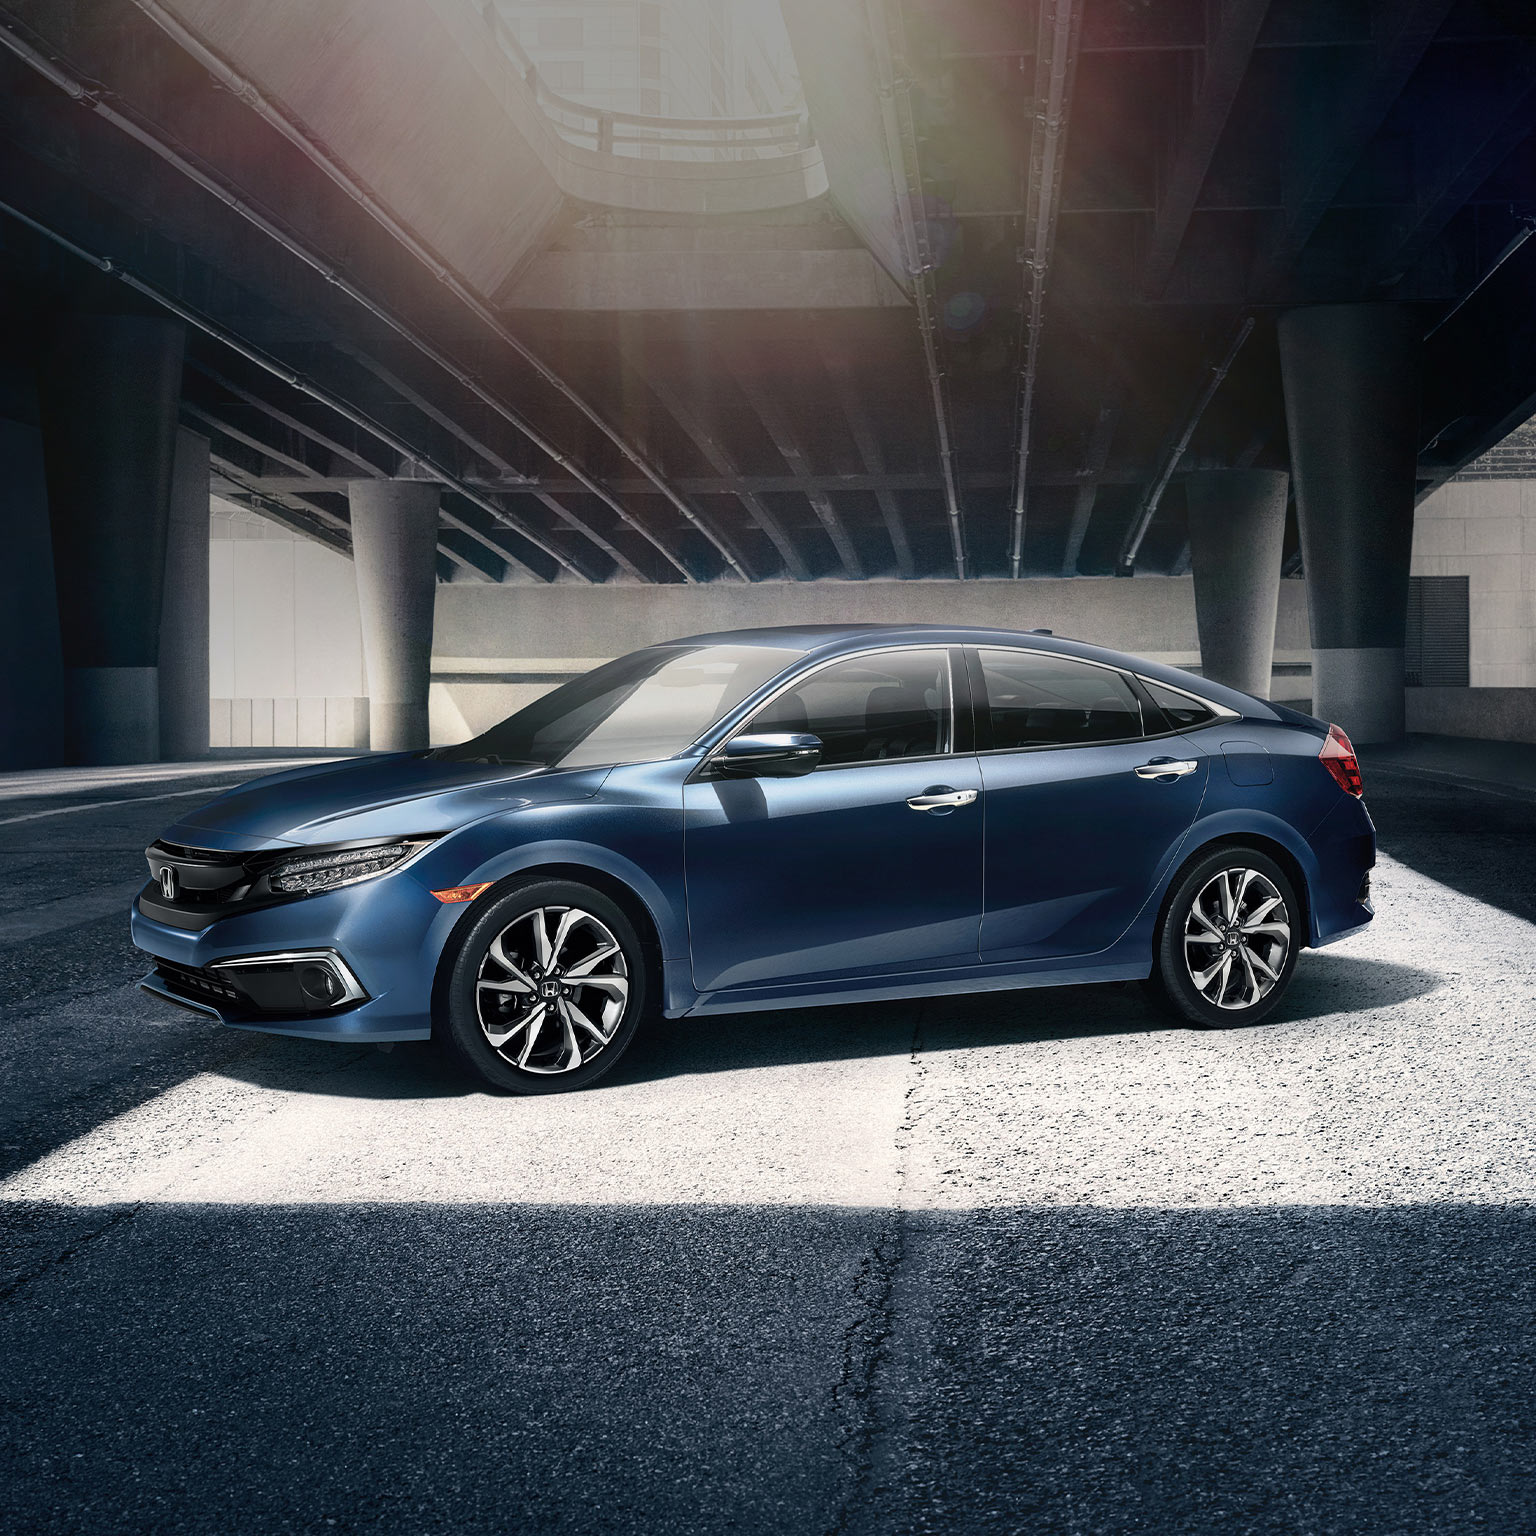 2020 Civic Sedan Restyled Sporty Design Honda